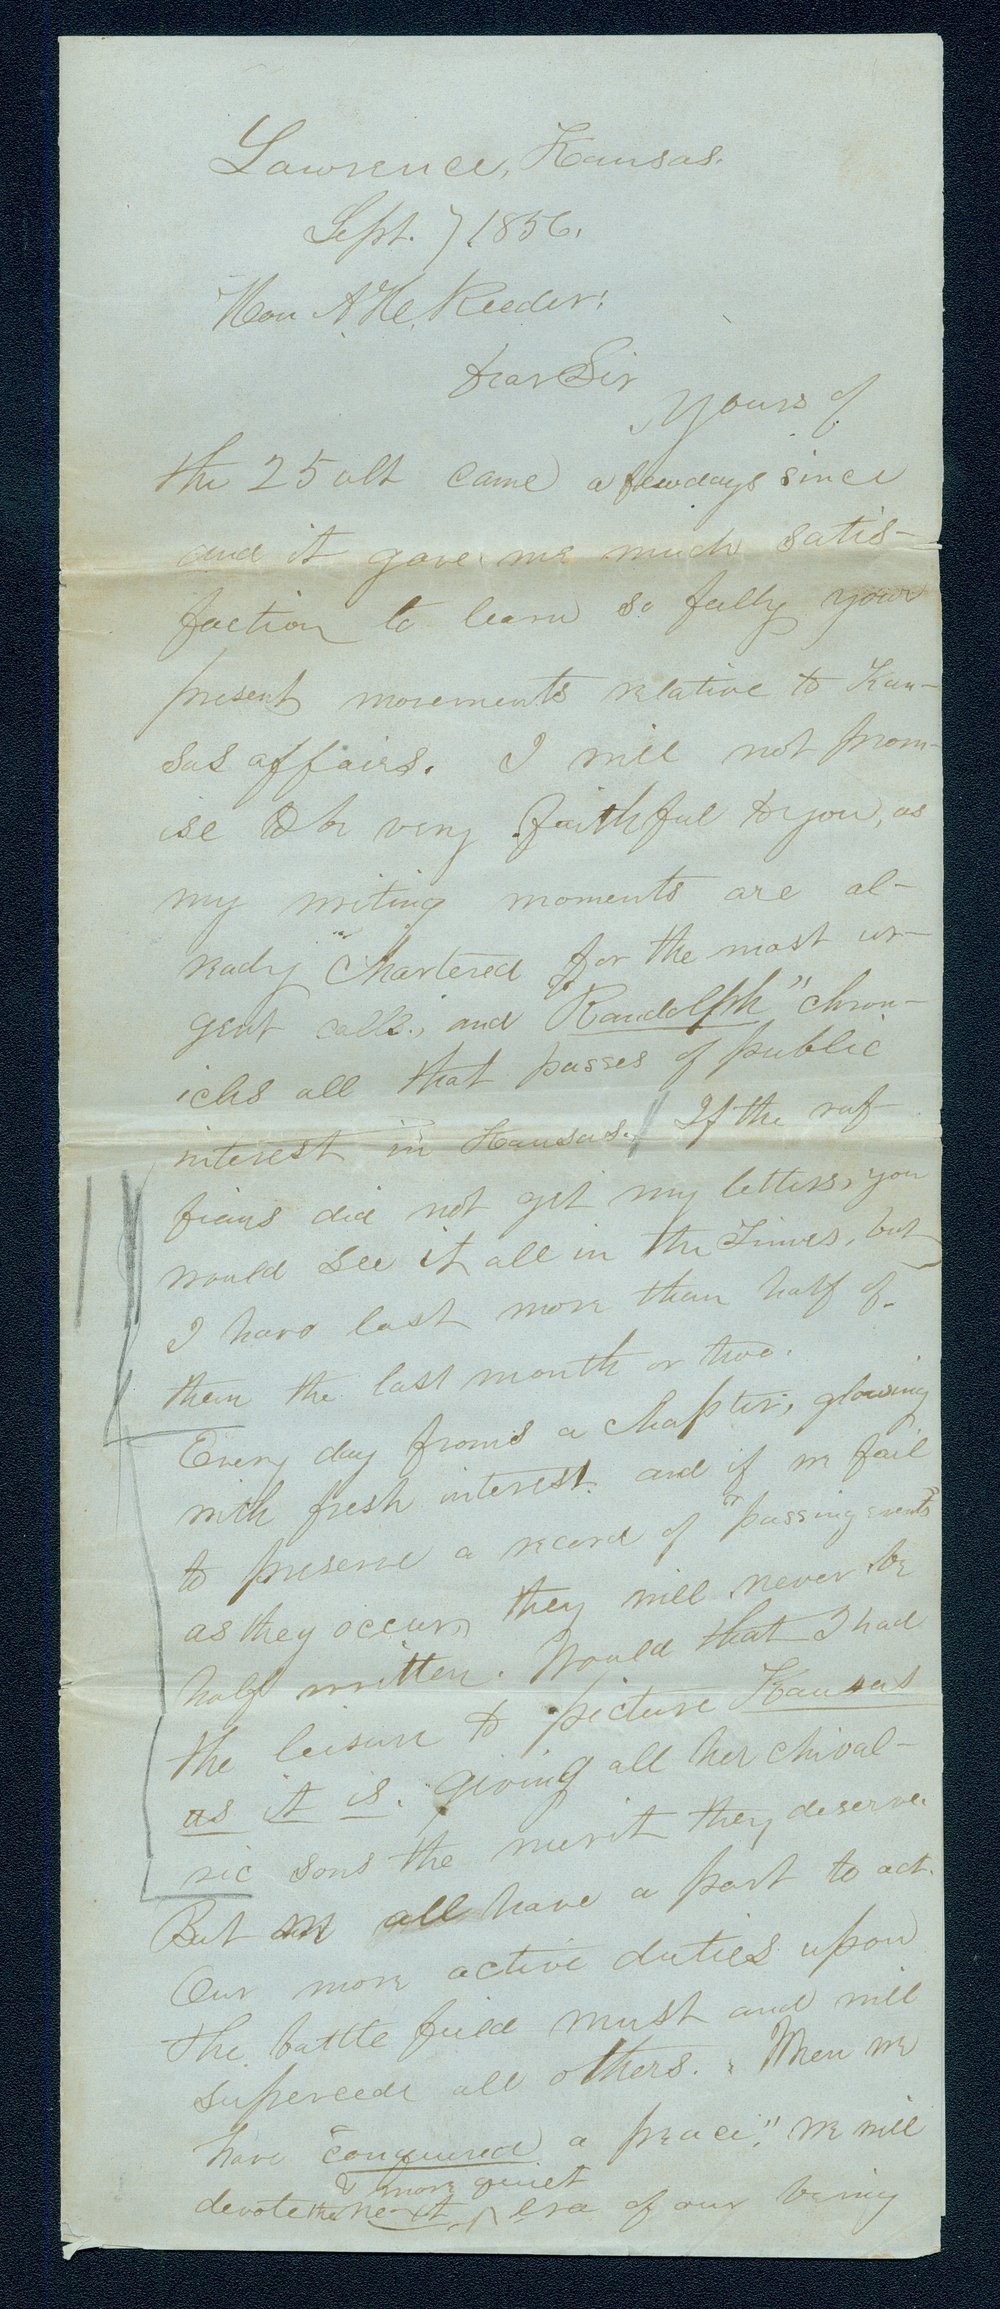 William Hutchinson to Andrew Horatio Reeder - 1